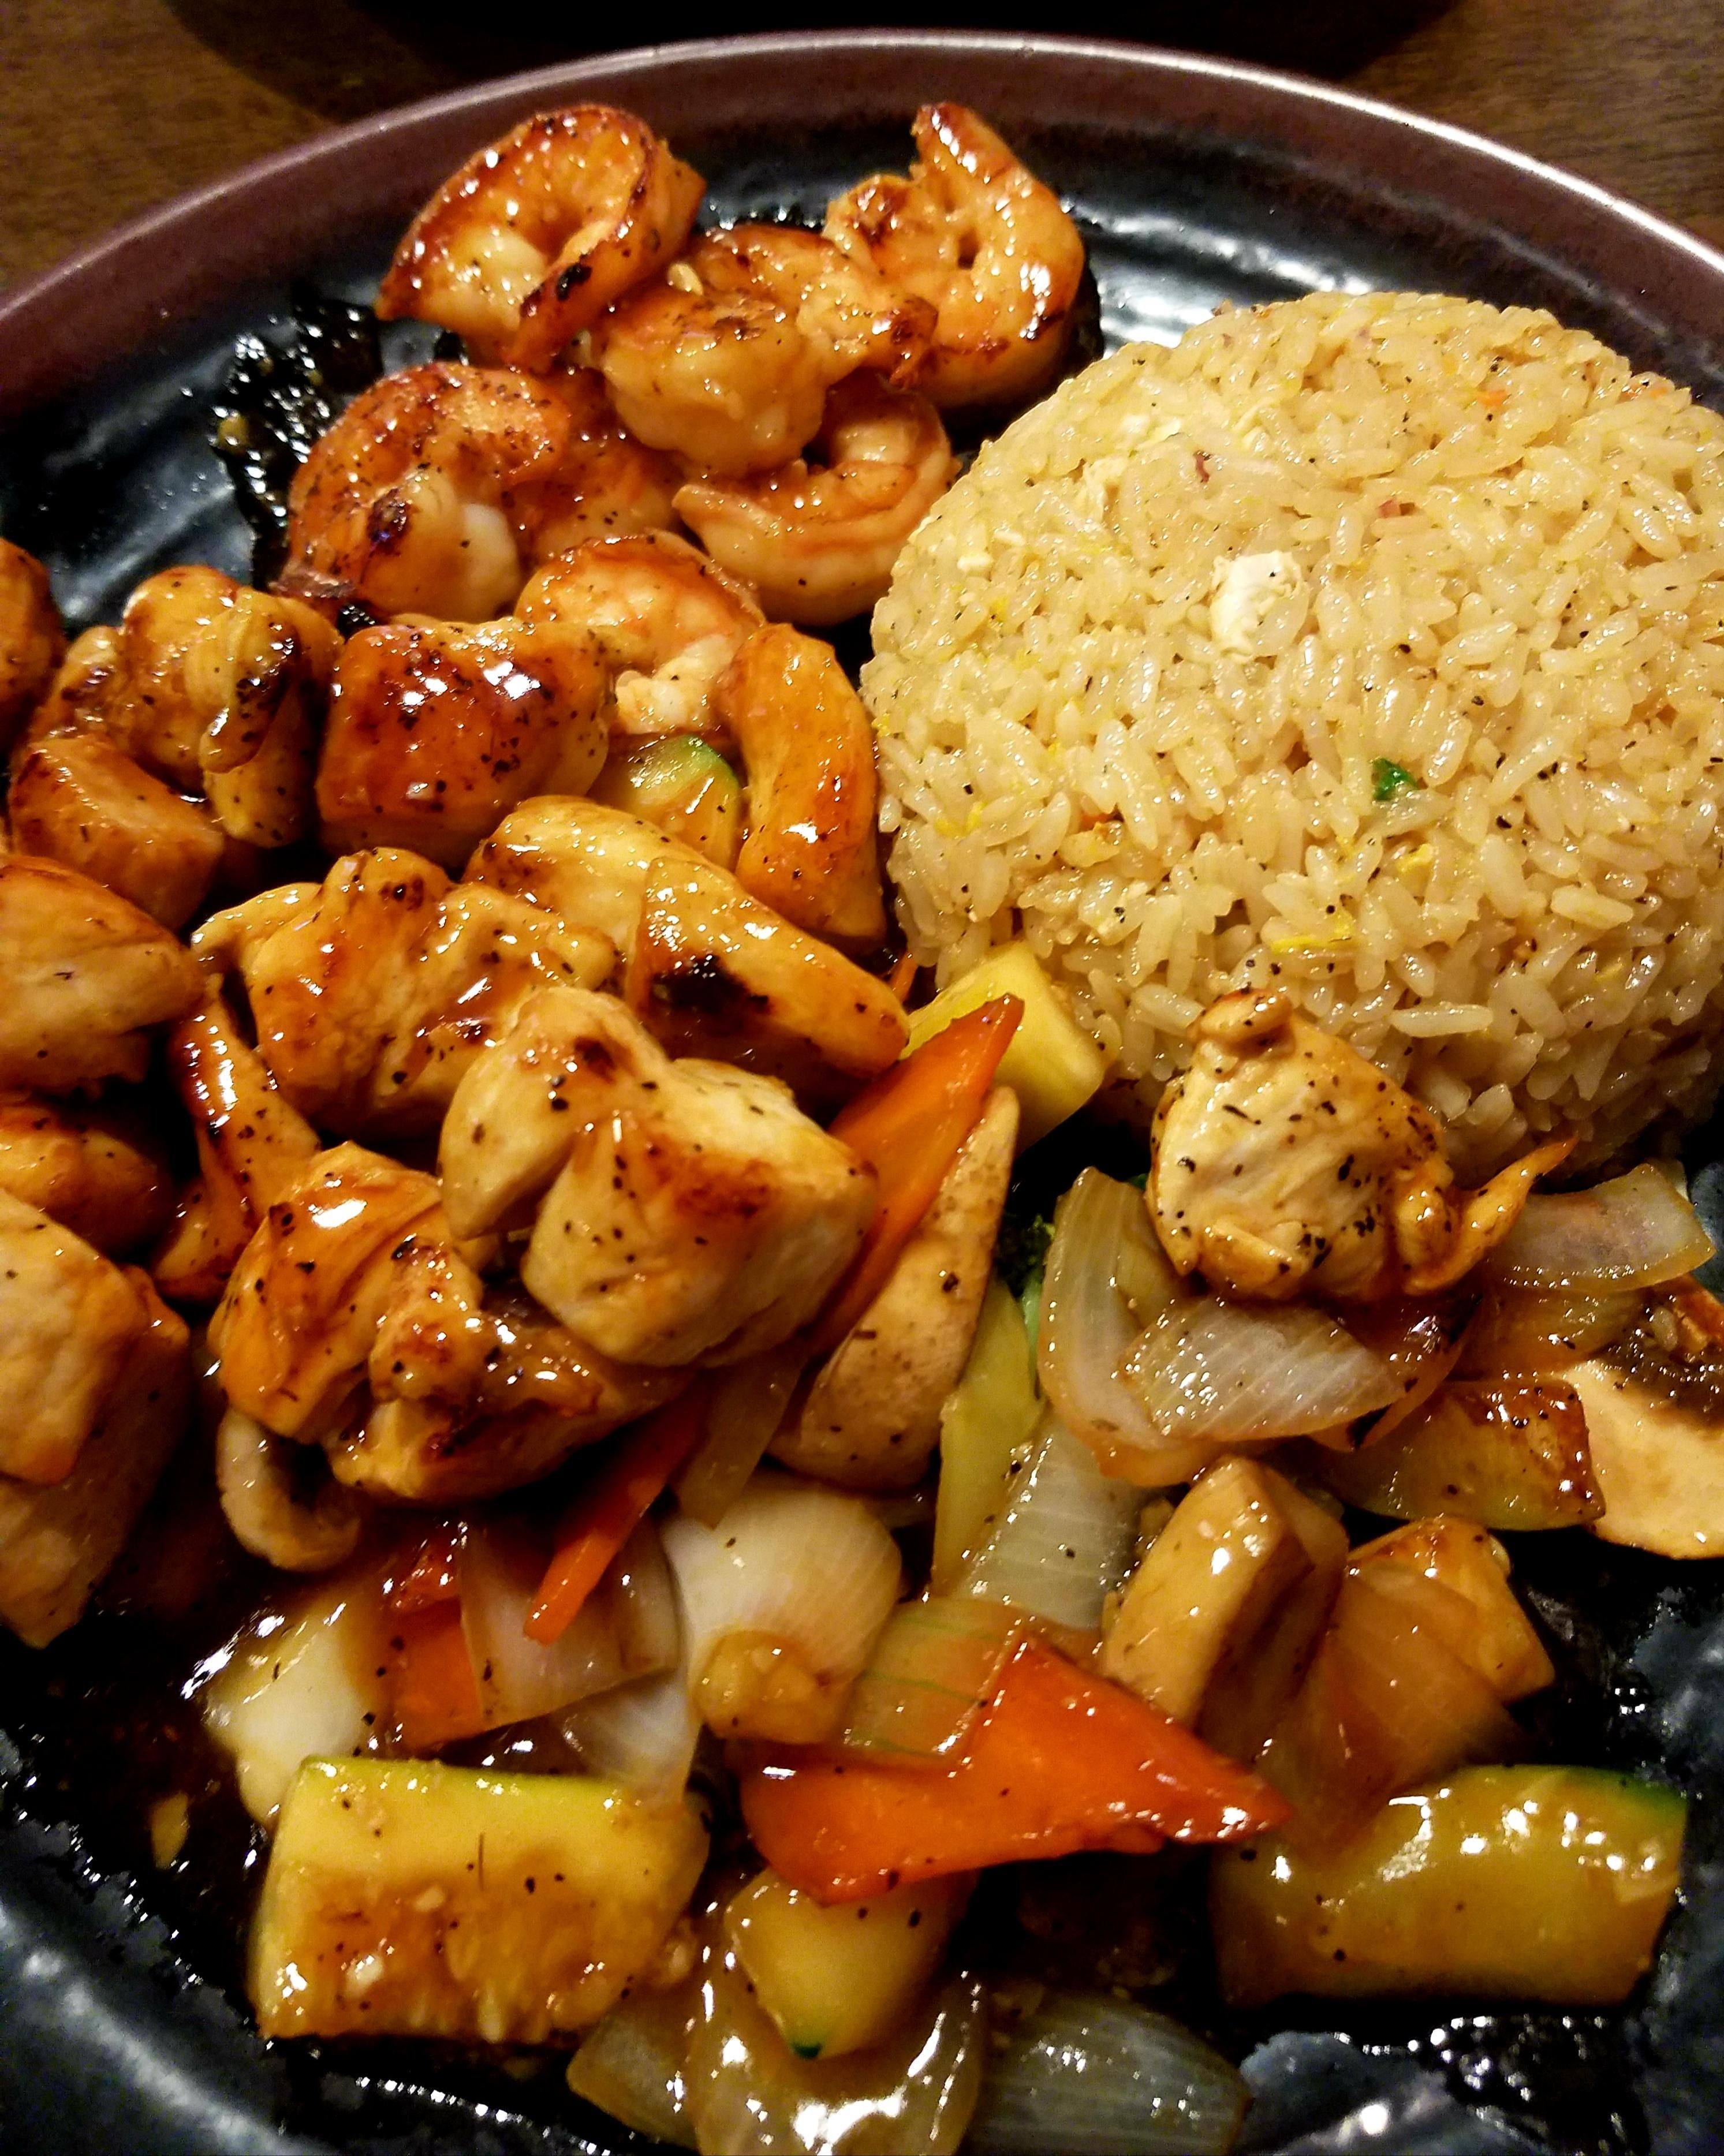 Hibachi Chicken Hibachi Chicken And Vegetables Recipe Japanese Food Hibachi Chicken Recipes At Home